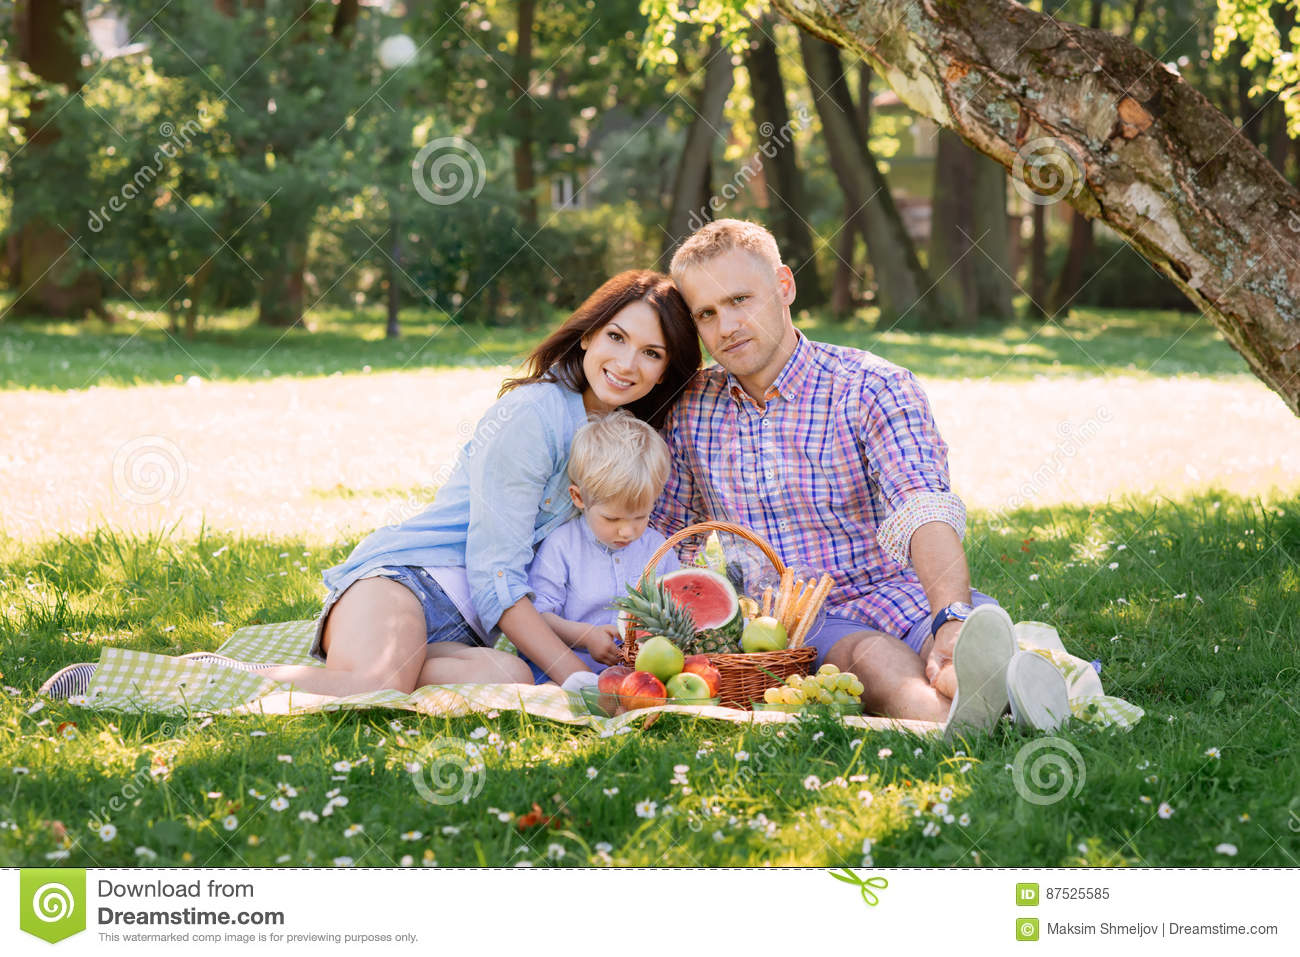 Family being together on vacation having a picnic.